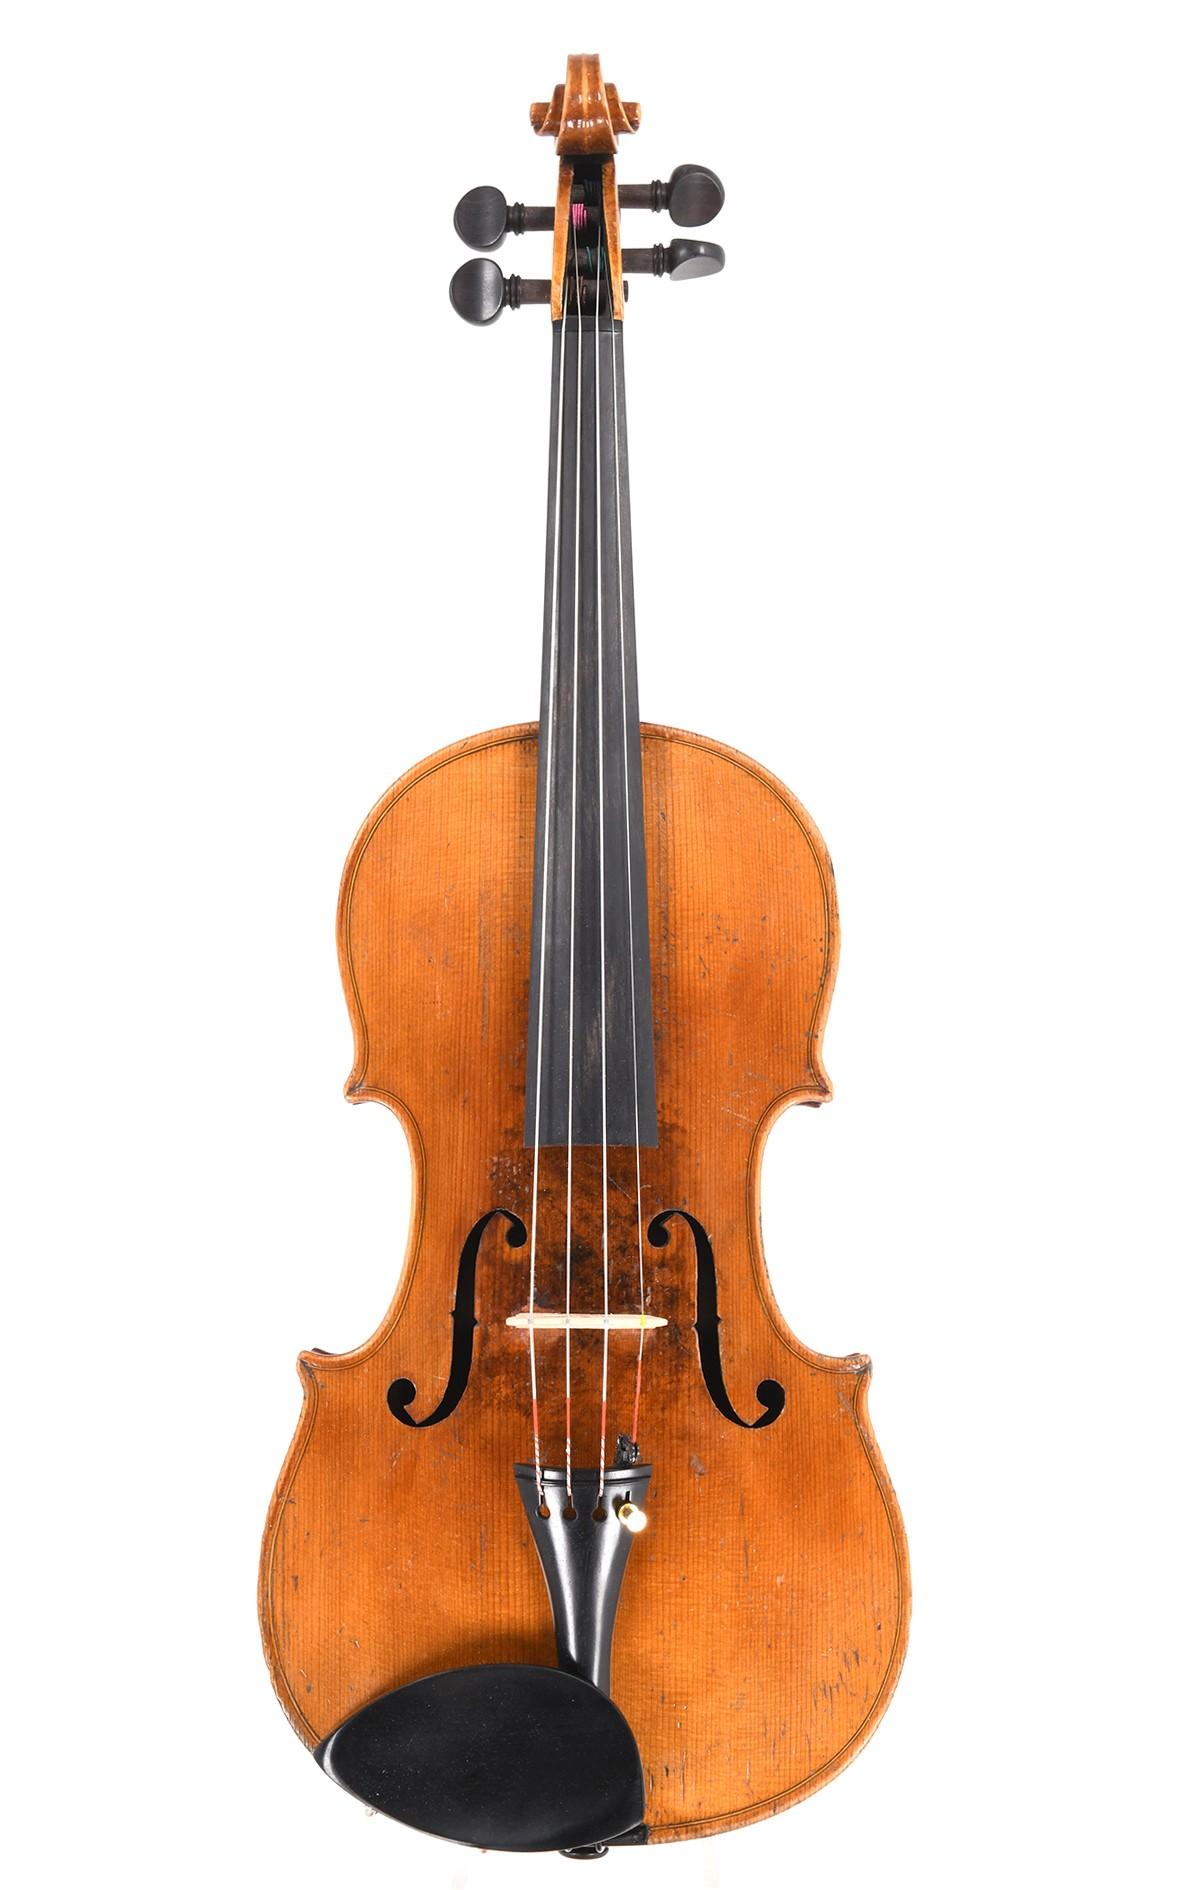 Antique violin from Saxony built around 1870